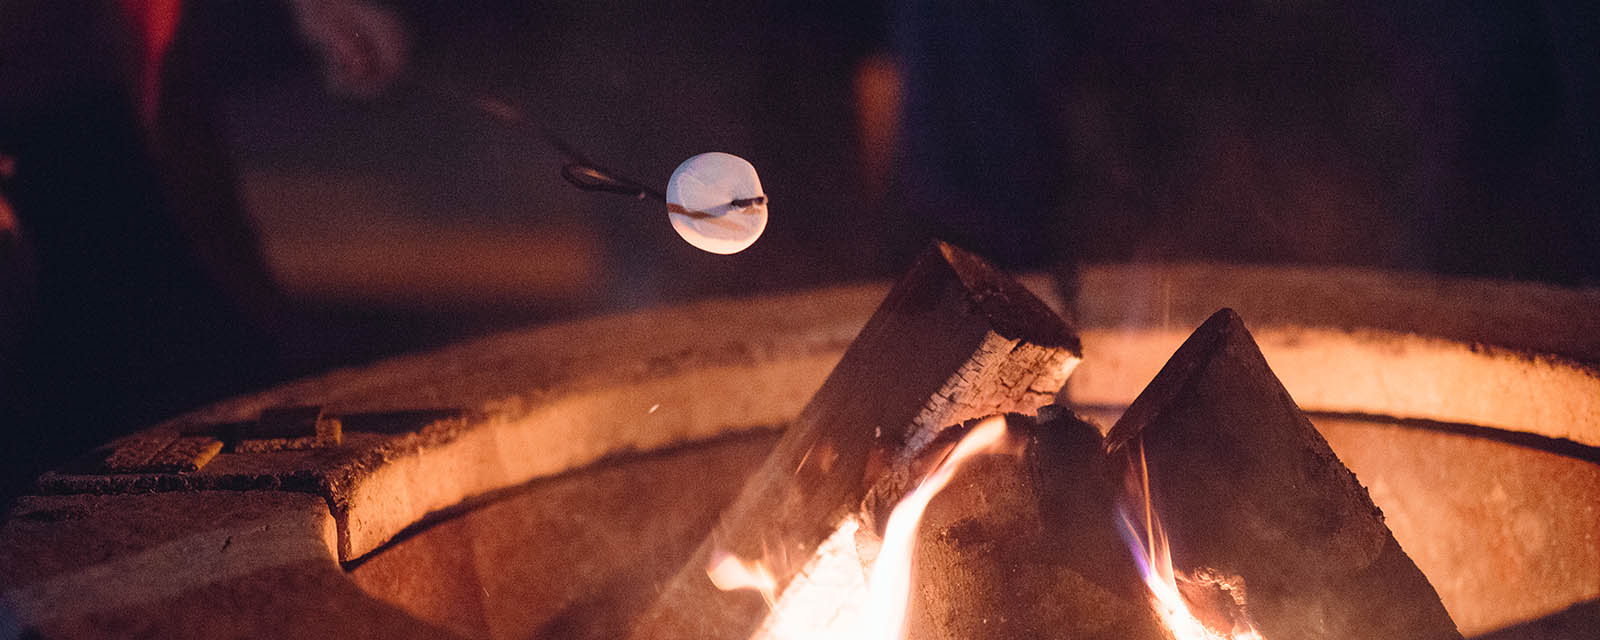 roasting marshmallow over camp fire